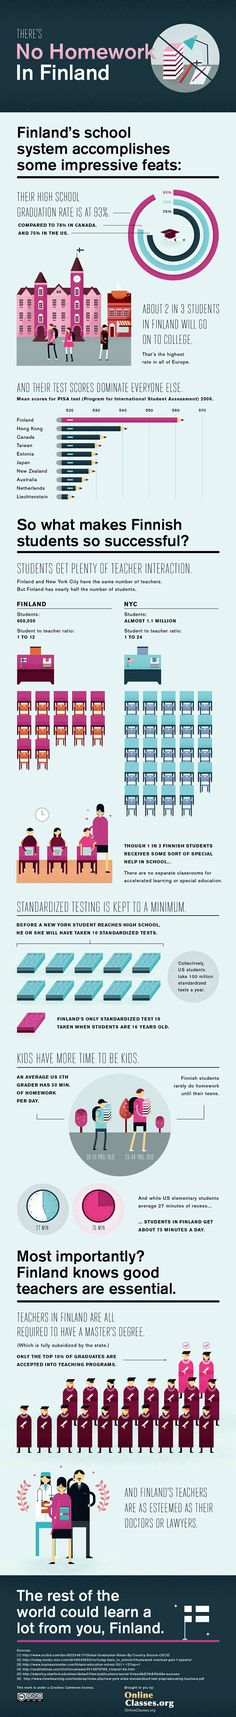 Interesting look at education. More standardized tests don't make the system better.